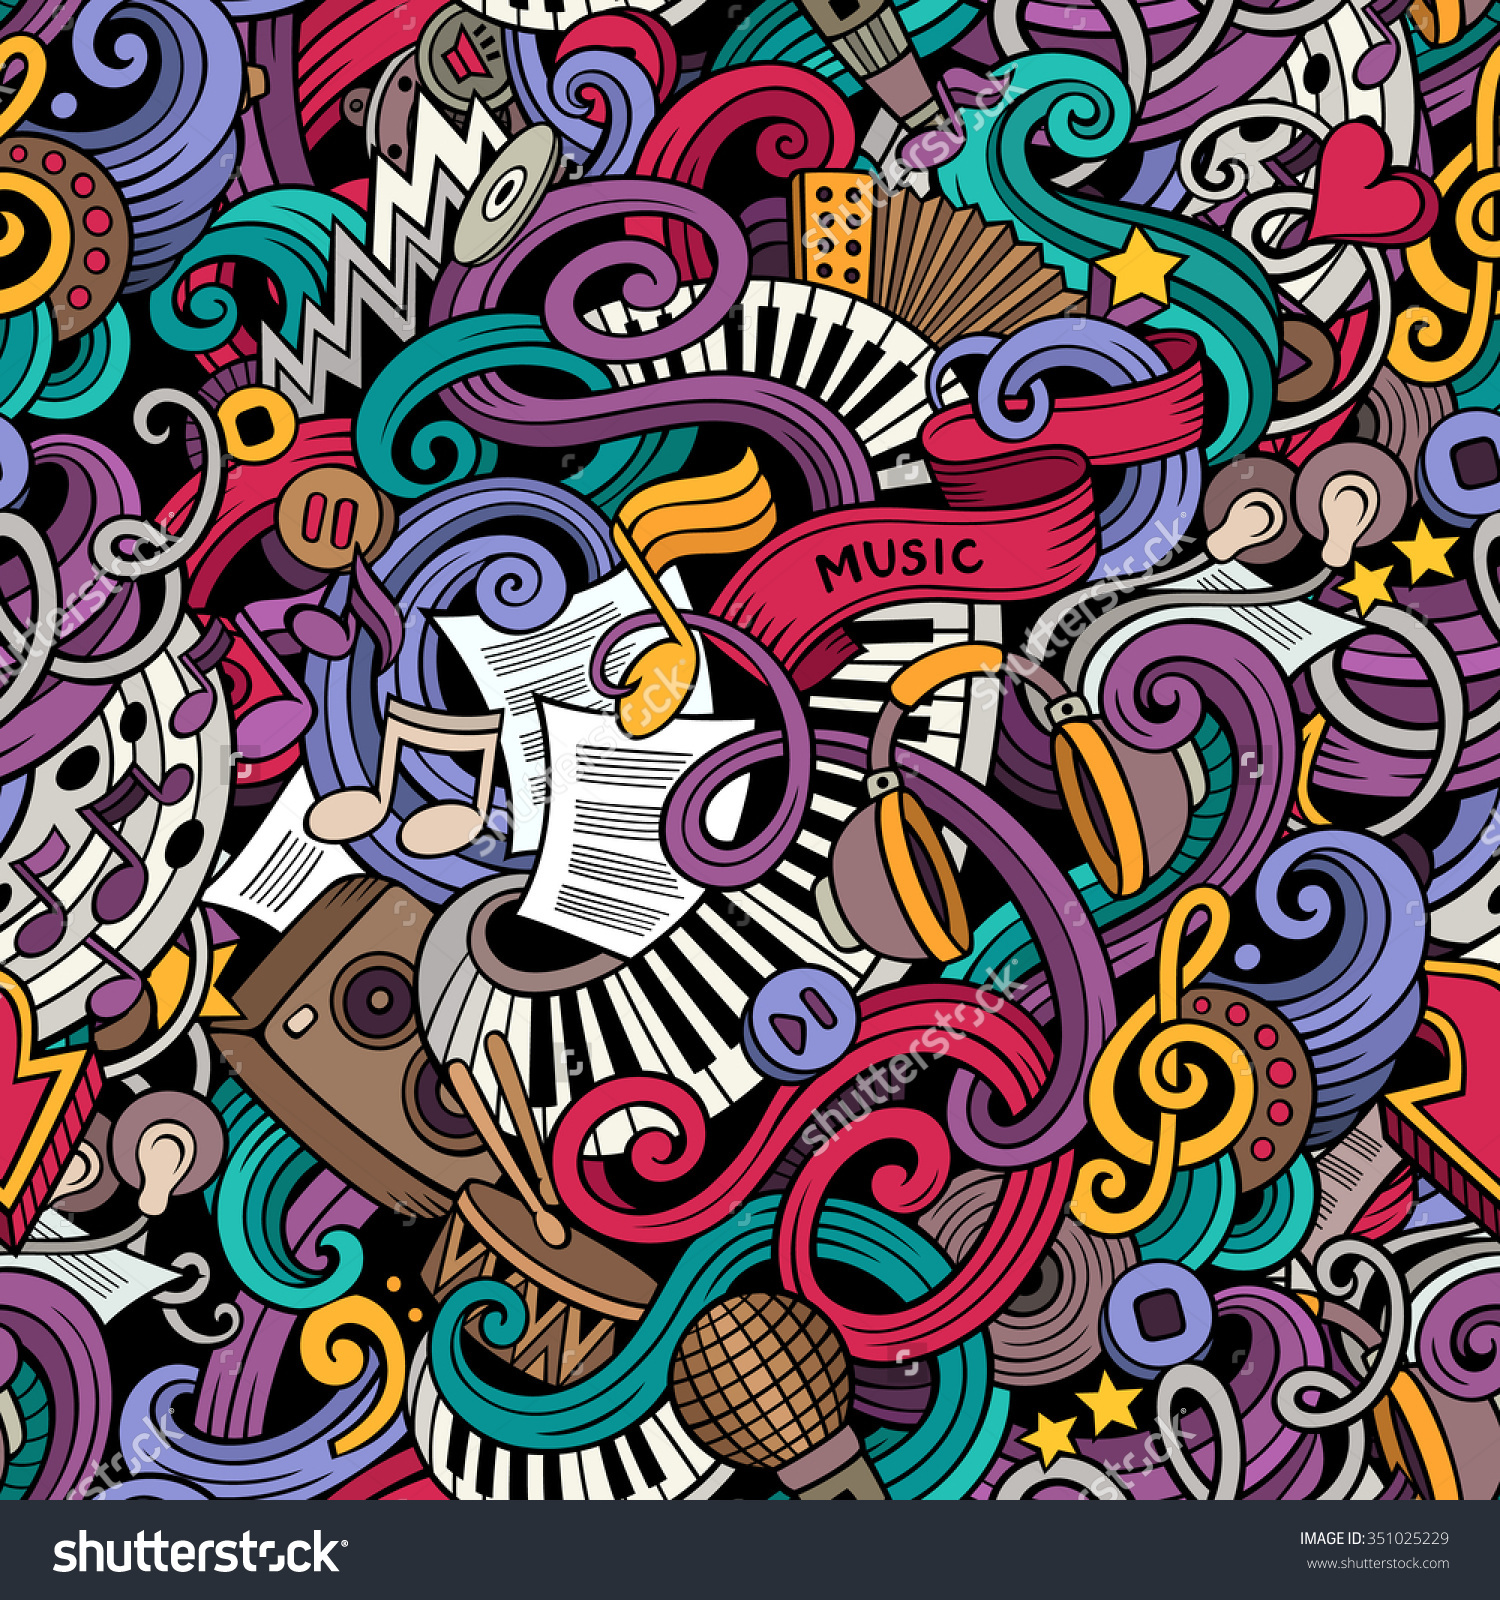 Drawn music doodle background Music Style The On Subject